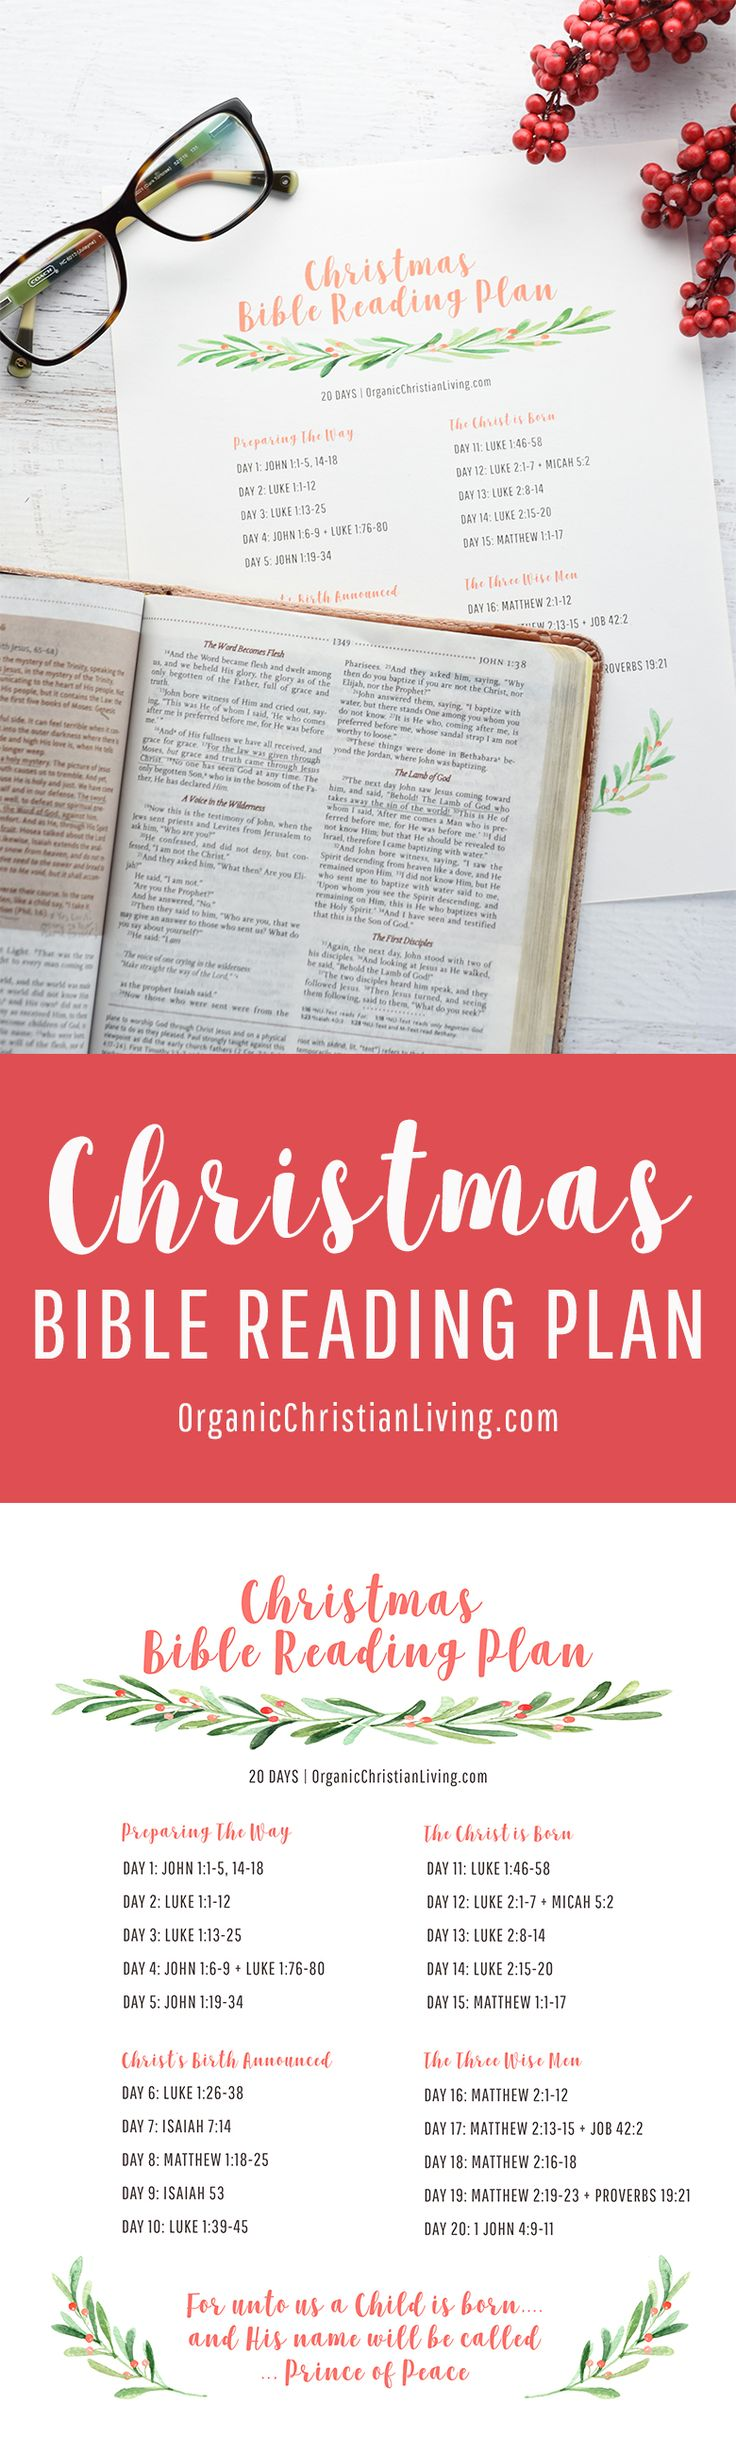 Advent: Keep Christ in Your Christmas - Bible Study Tips